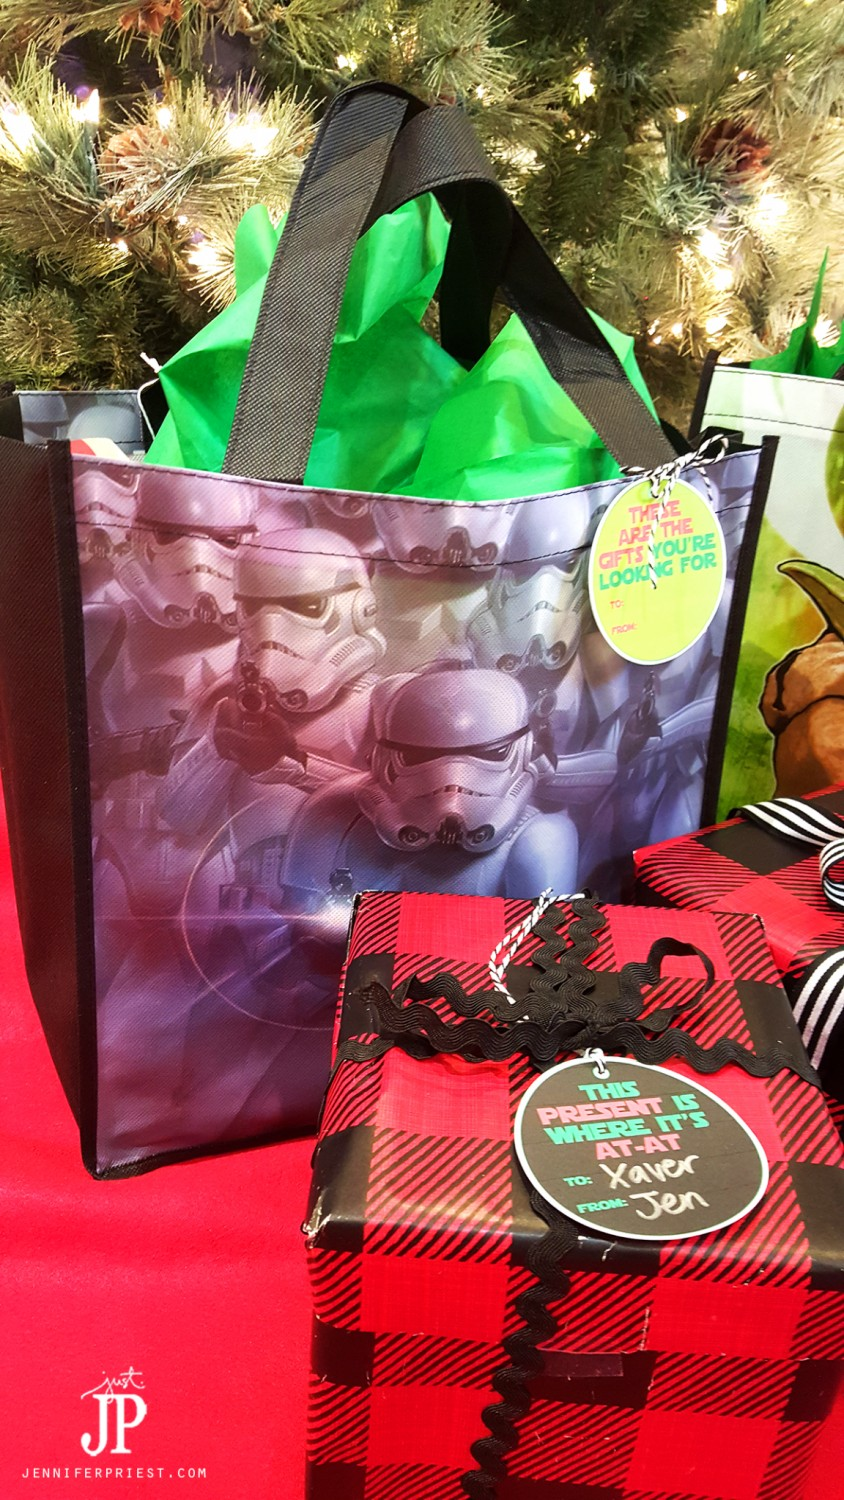 May-the-Force-Be-With-You-Star-Wars-Gift-Tags-Jpriest